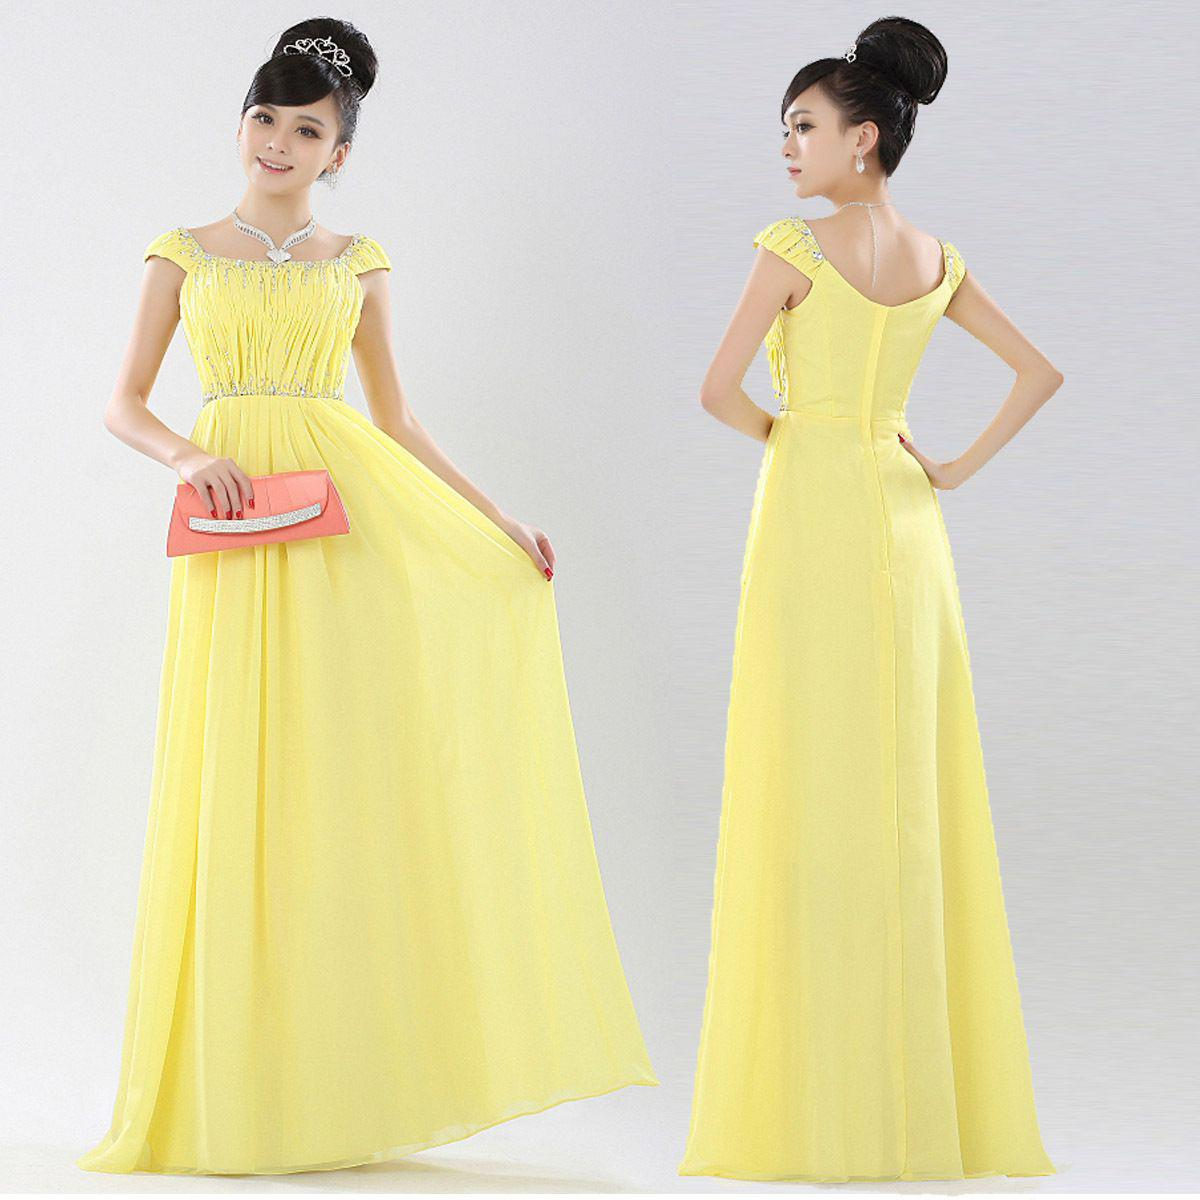 Luxury yellow wedding dress bridal evening dress formal dress 2015 l